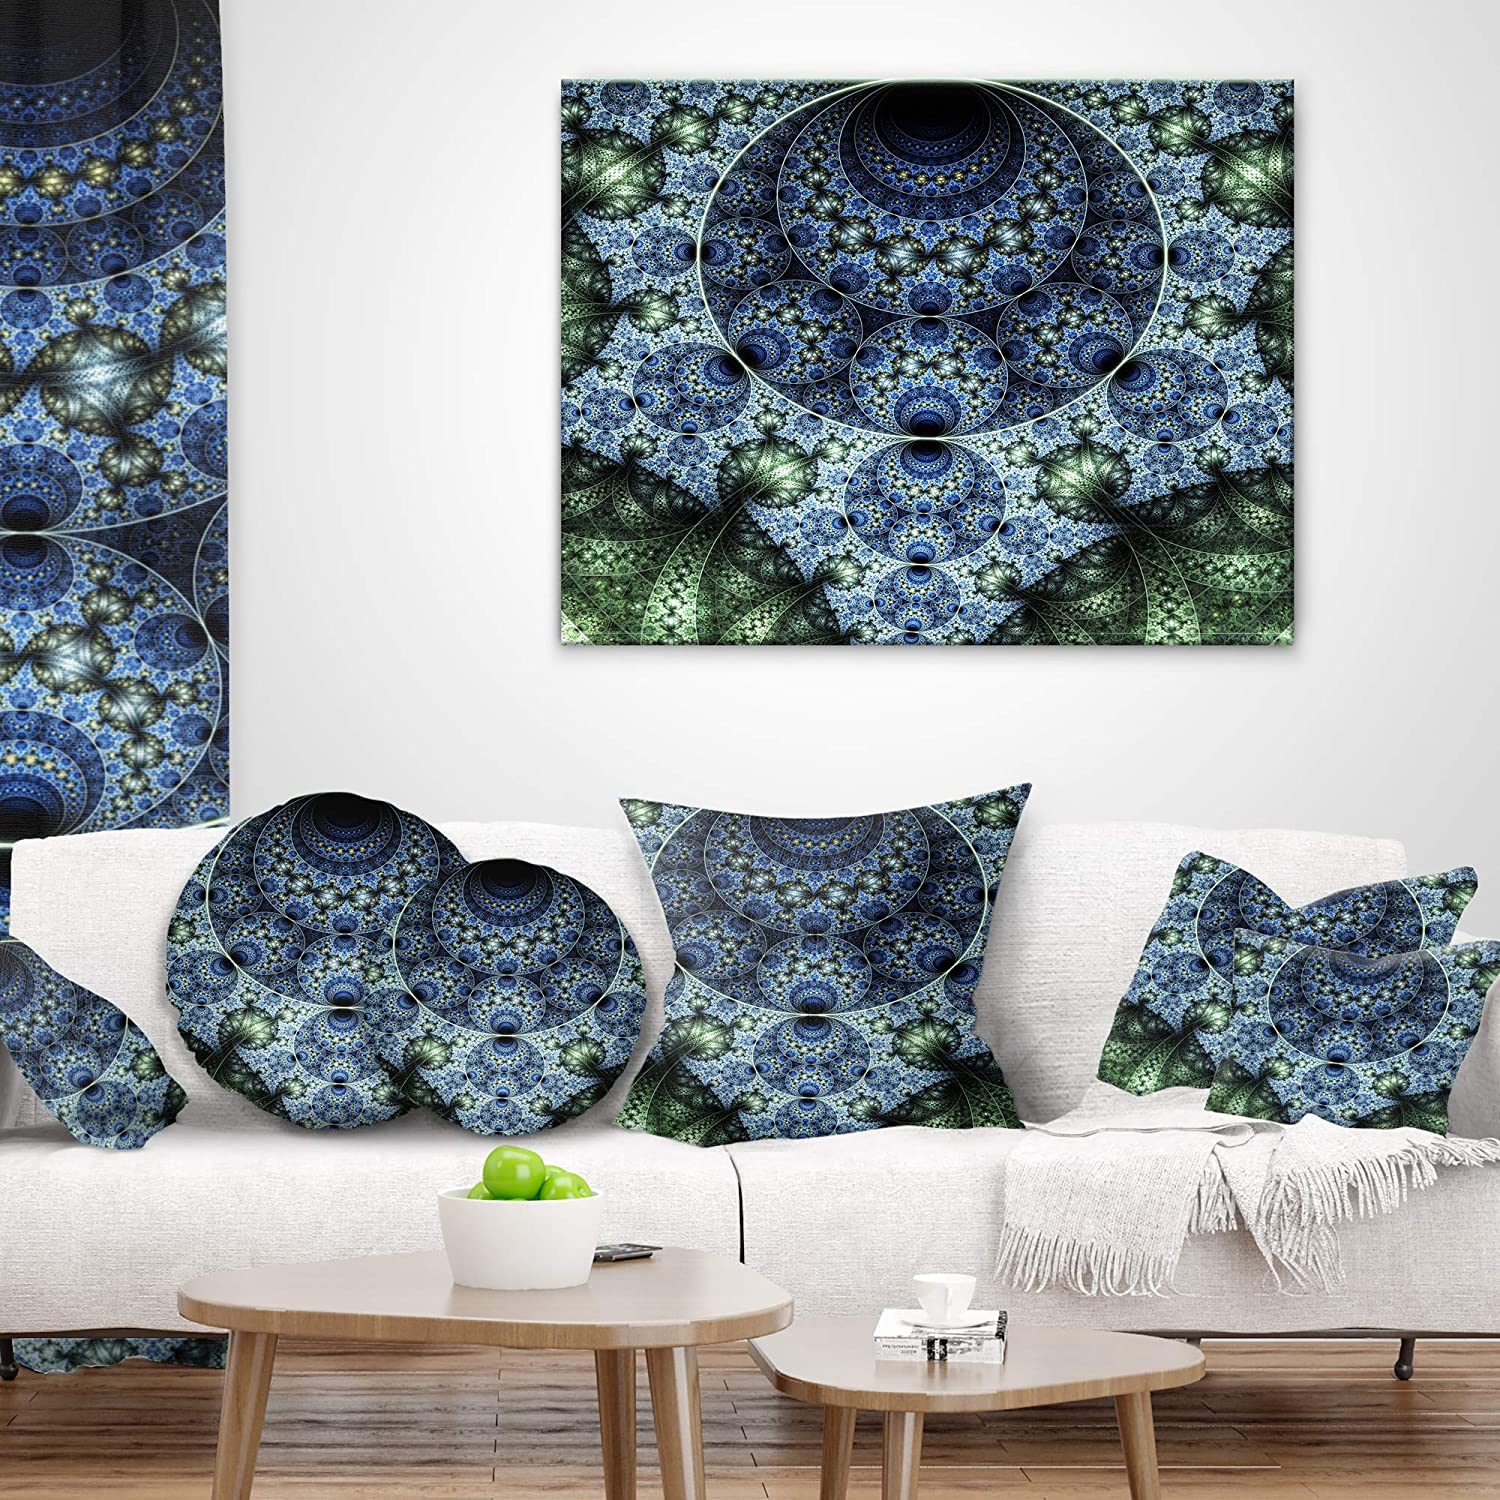 Sofa Throw Pillow x 20 in 12 in Designart CU7280-12-20 Blue and Green Spiral Fractal Art Abstract Lumbar Cushion Cover for Living Room Insert Printed On Both Side